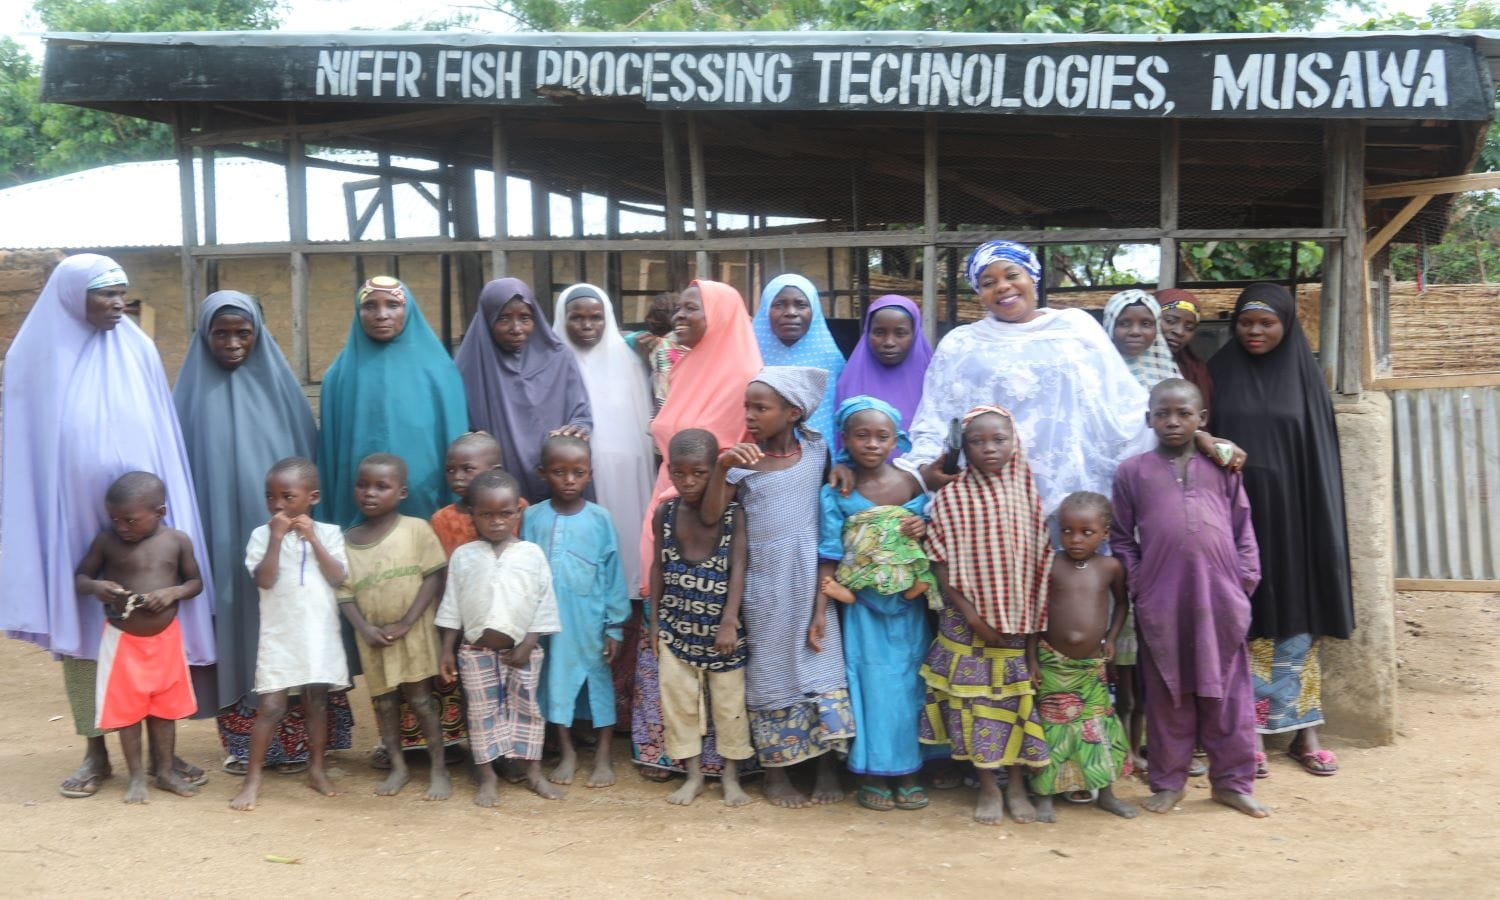 Through WAAPP, CORAF empowers rural Nigerian women by developing female employment at fisheries and through aquaculture jobs.